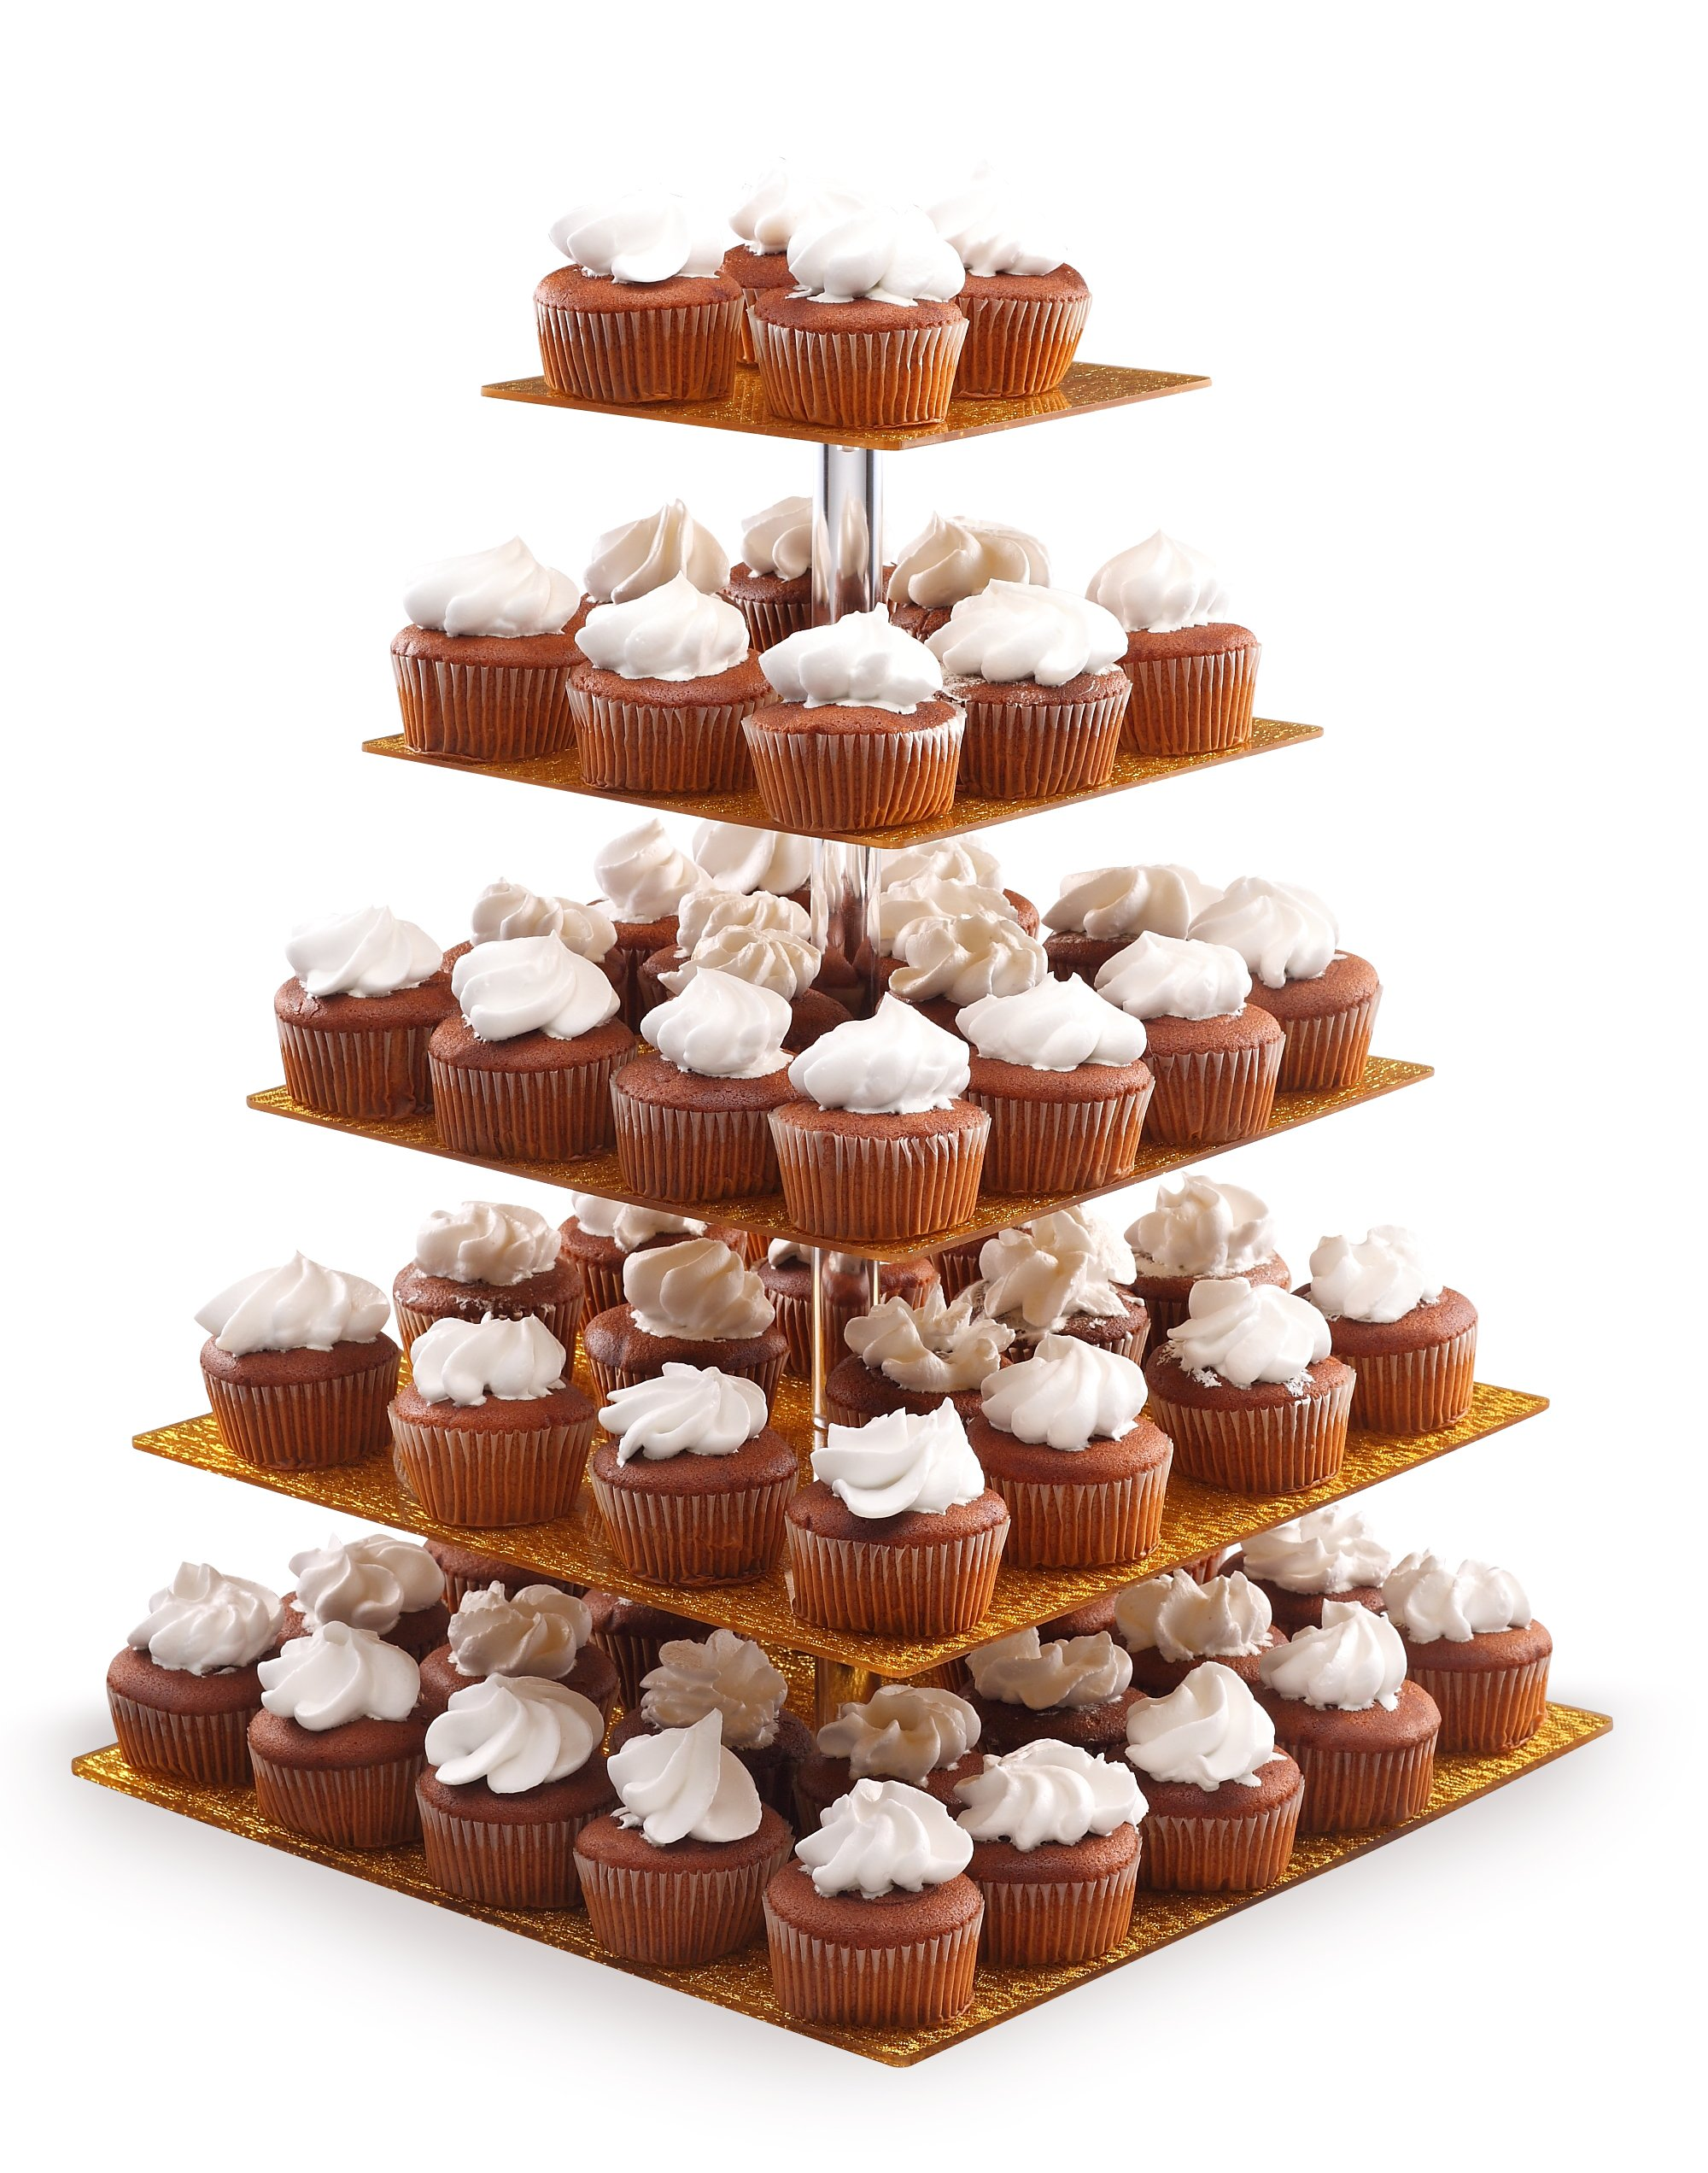 Eglaf Acrylic 5-Tier Gold Cupcake Stand Cakes and Desserts Display Tower/Food Display Platter for Wedding Party (5-Tier-Square-Gold) by Eglaf (Image #5)